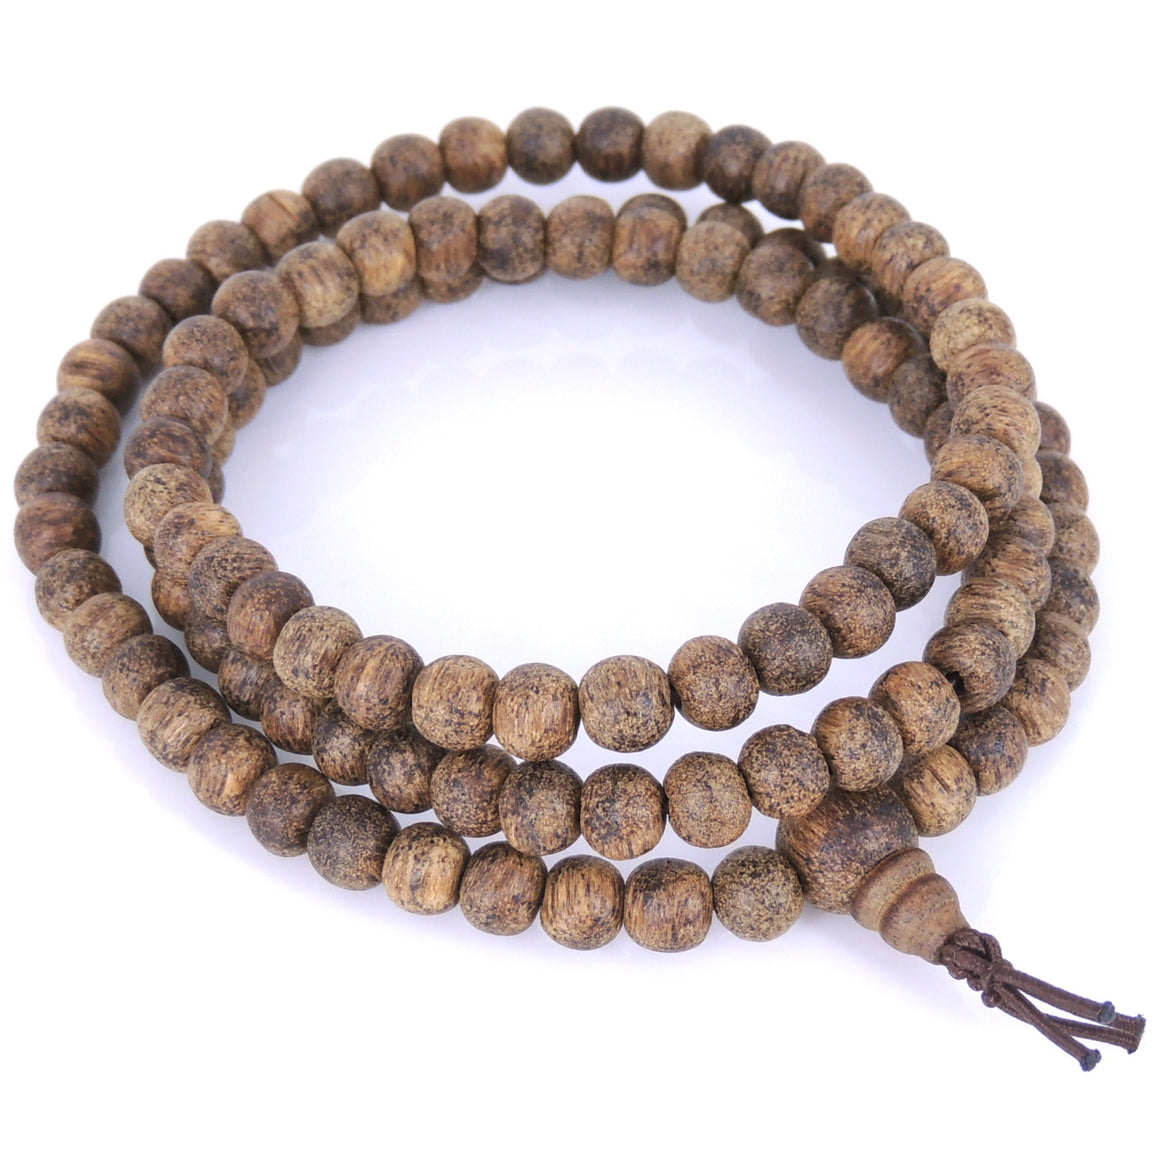 6.5mm Golden Vietnamese Agarwood Bracelet/Necklace 108 Beads for Meditation - Gem & Silver AW008